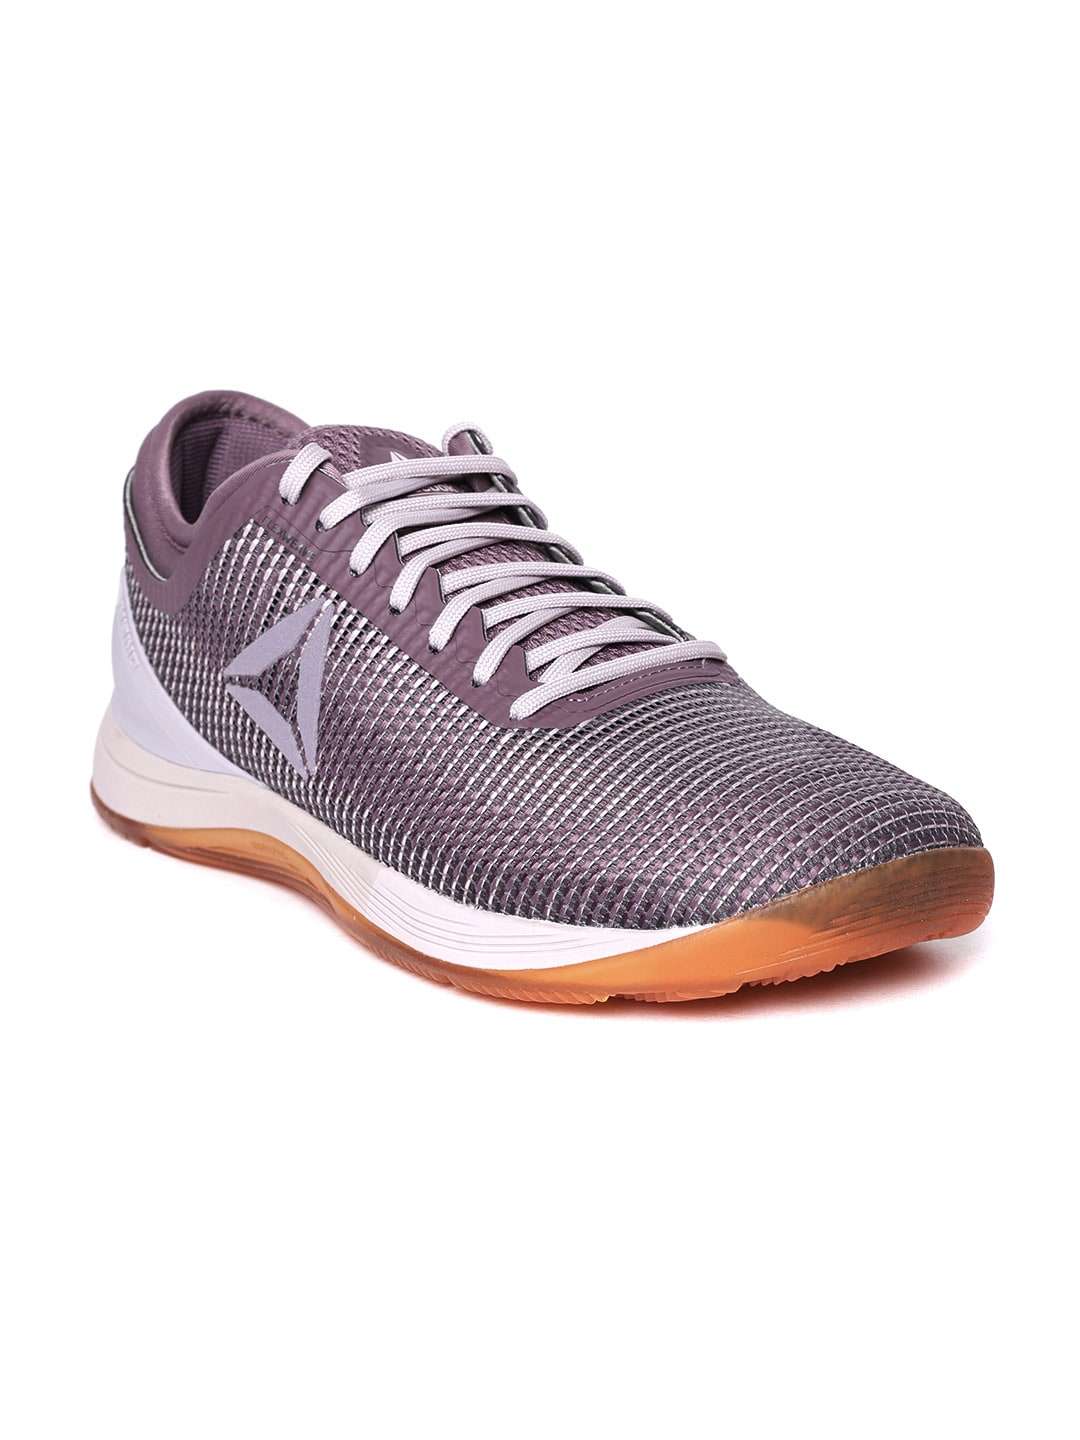 Men Sports Shoes Store - Buy Men Sports Shoes Store online in India b52fe39d8